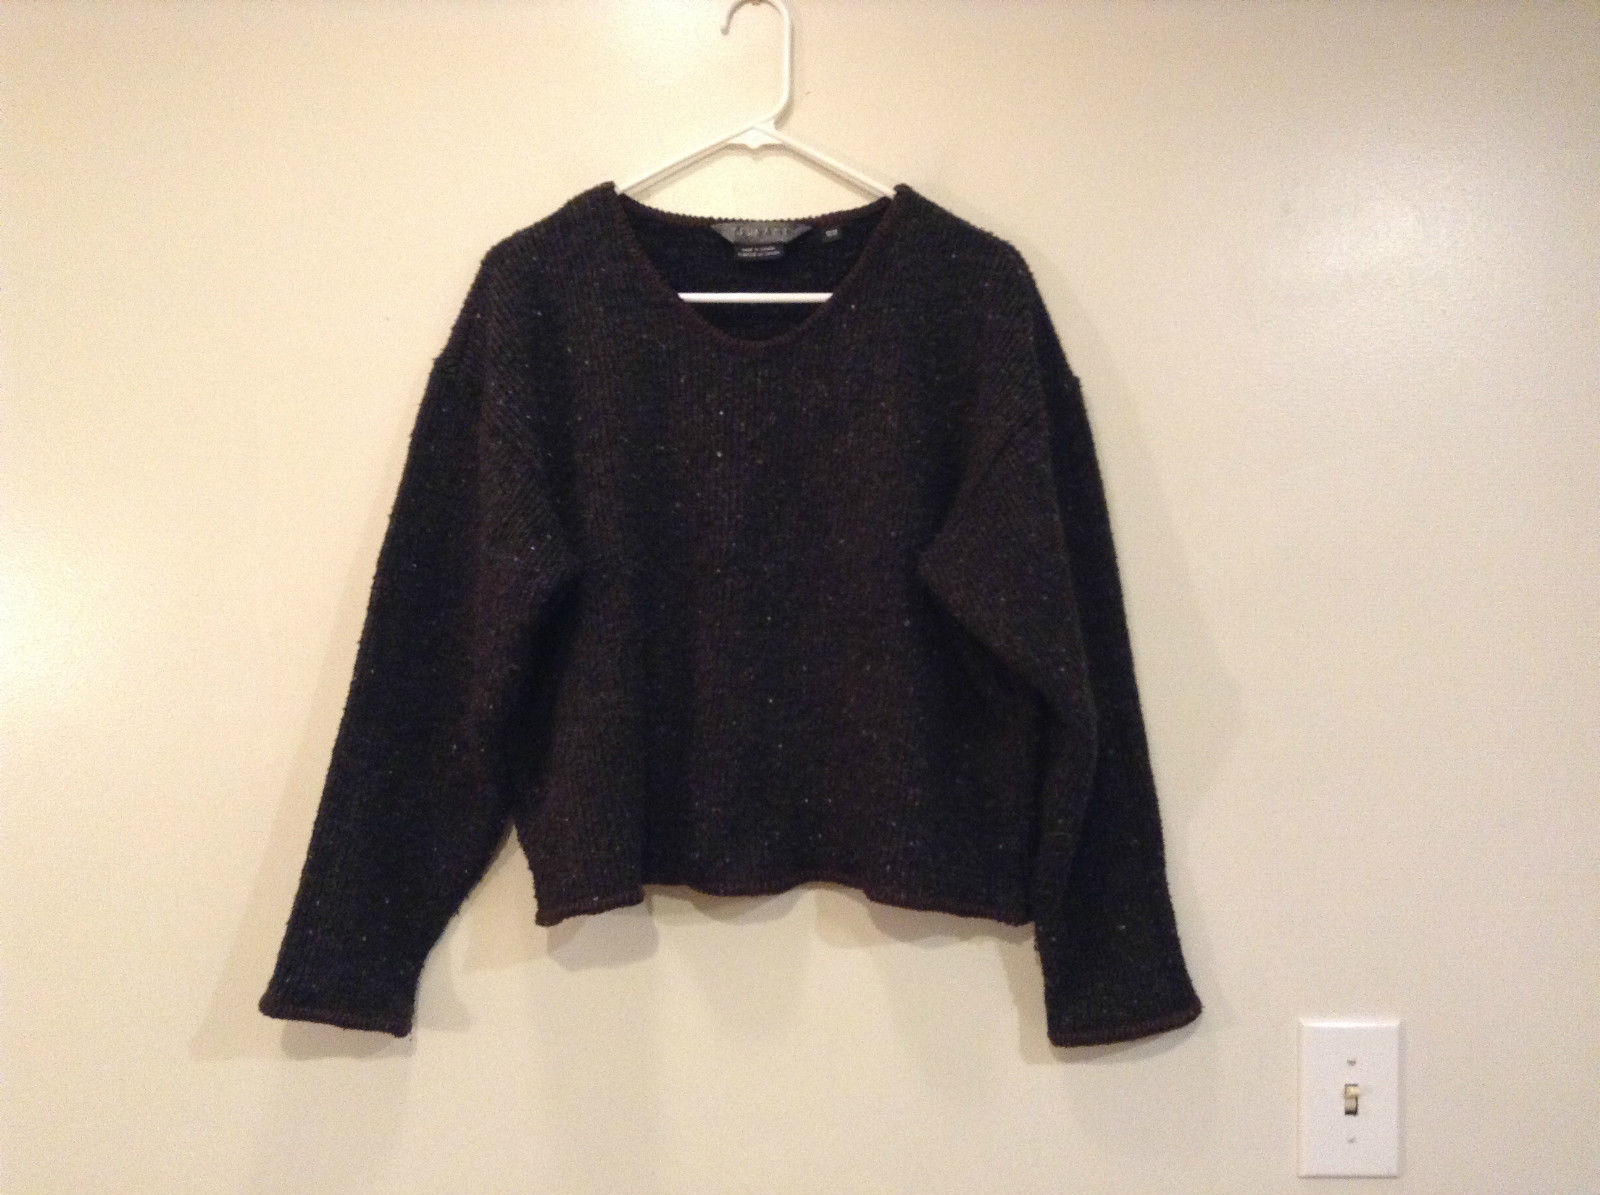 TSUNAMI Black Long Sleeve Scoop Neck Knitted Sweater Size Medium